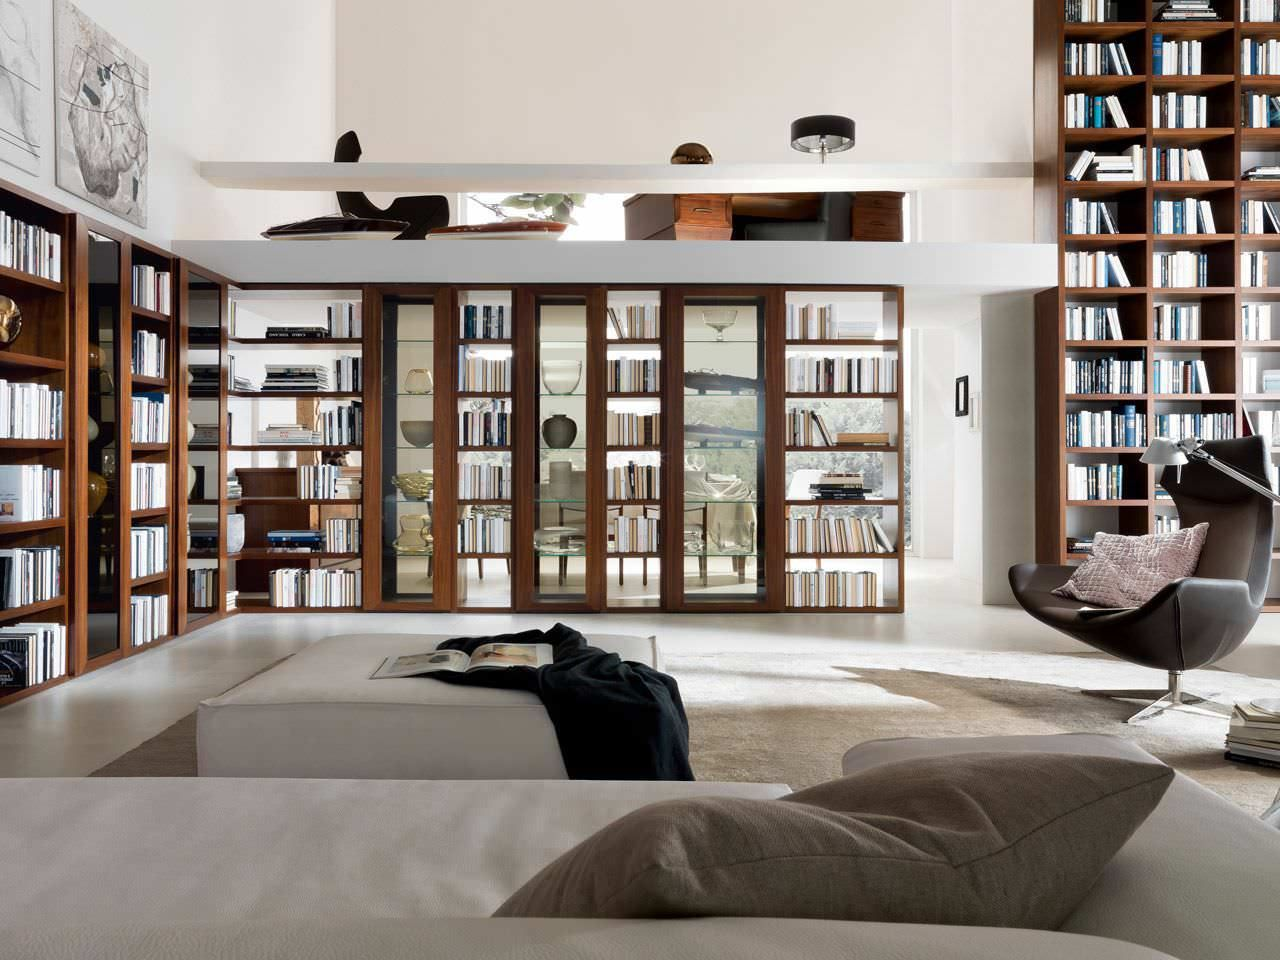 Home Library Design Ideas. Source